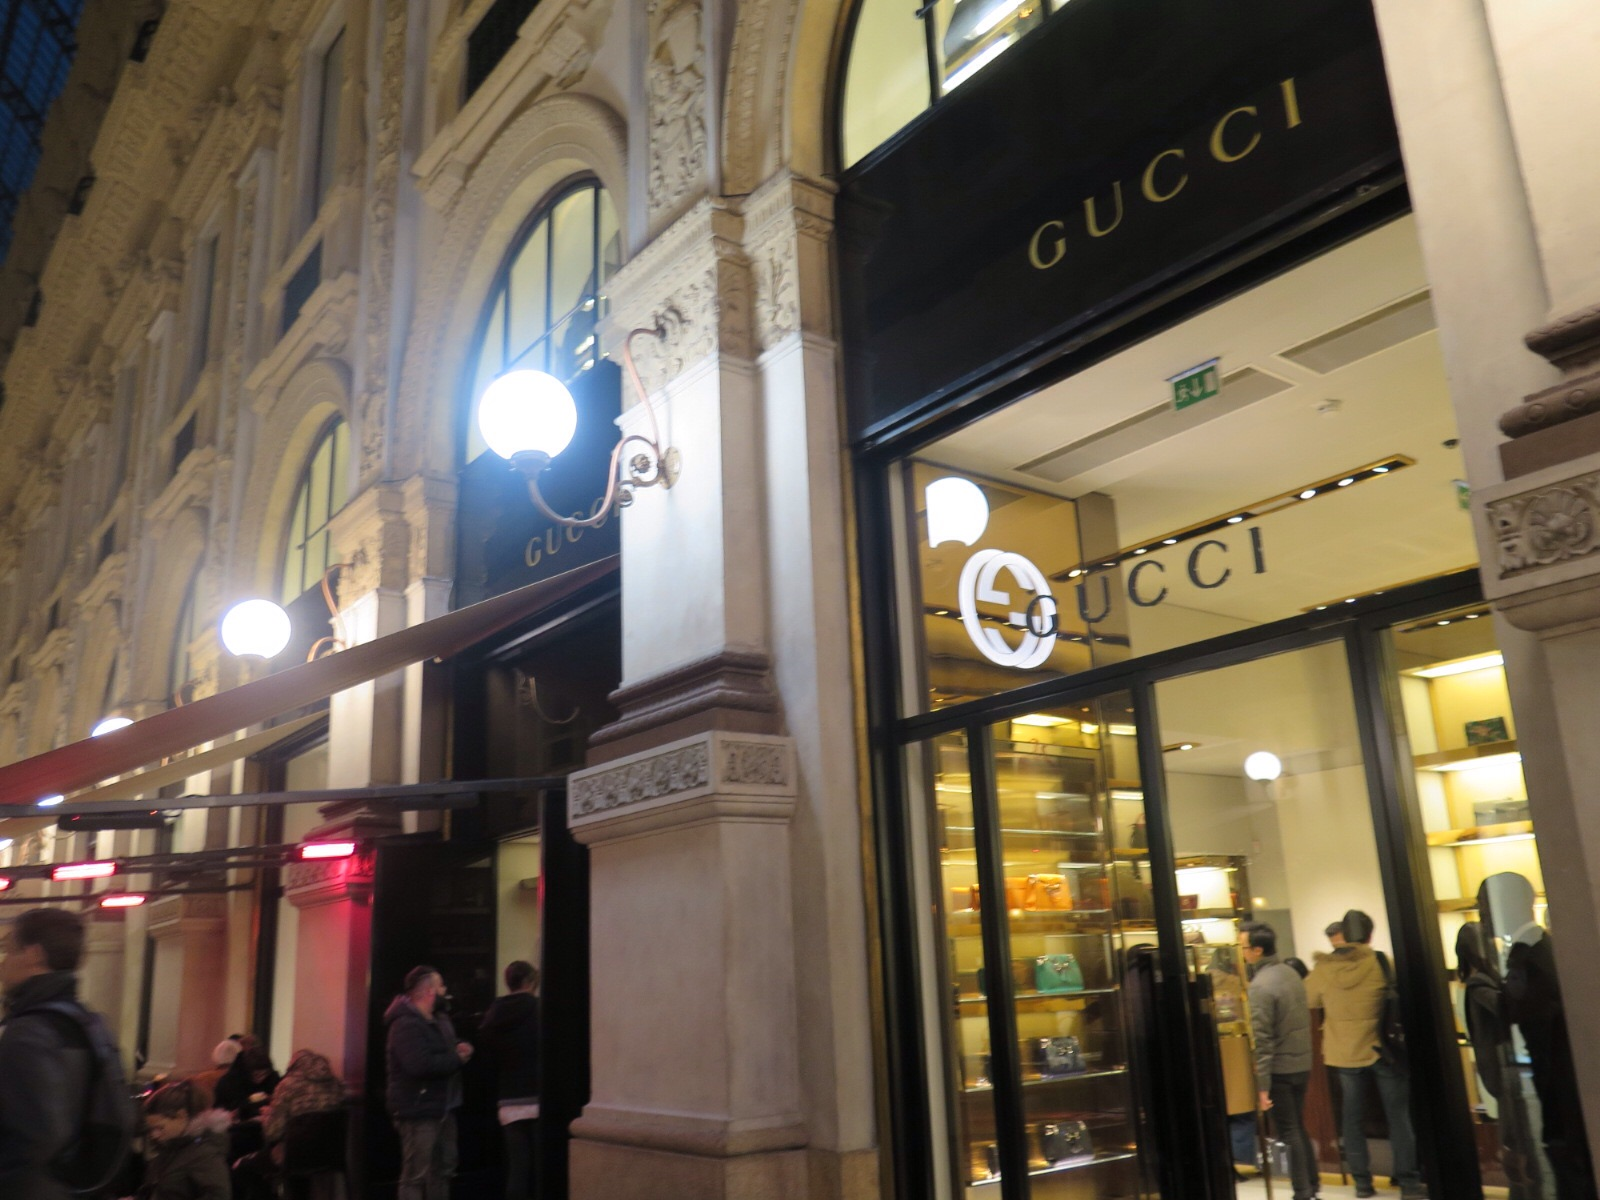 The cafe at the Gucci store in Galleria Vittorio Emanuele II, Milan